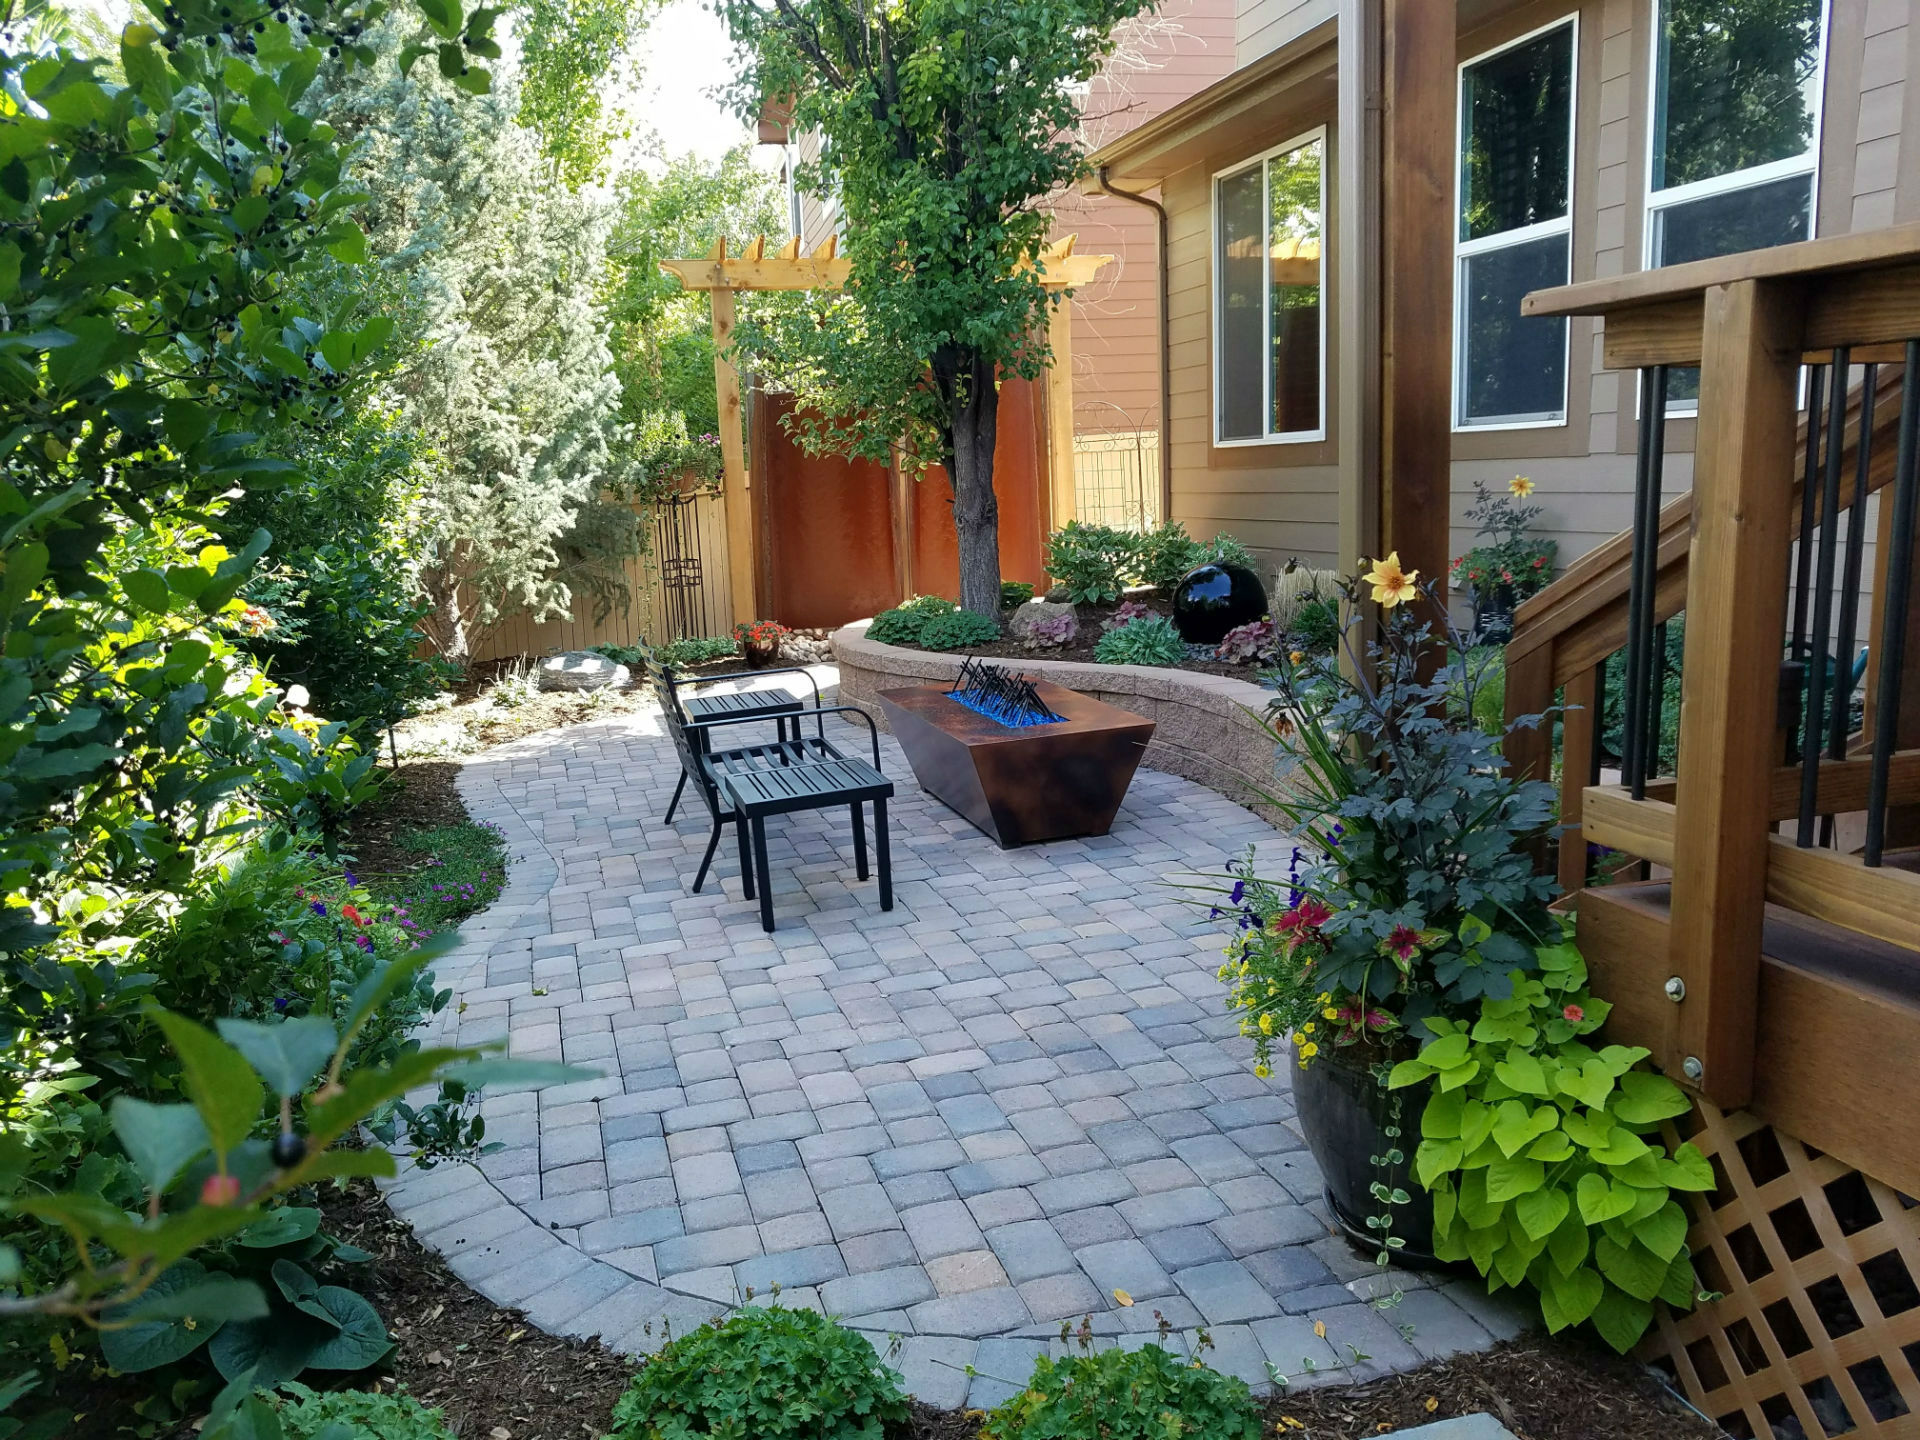 Deck & Patio Combinations - DeckTec Outdoor Designs on Patio With Deck Ideas id=55708